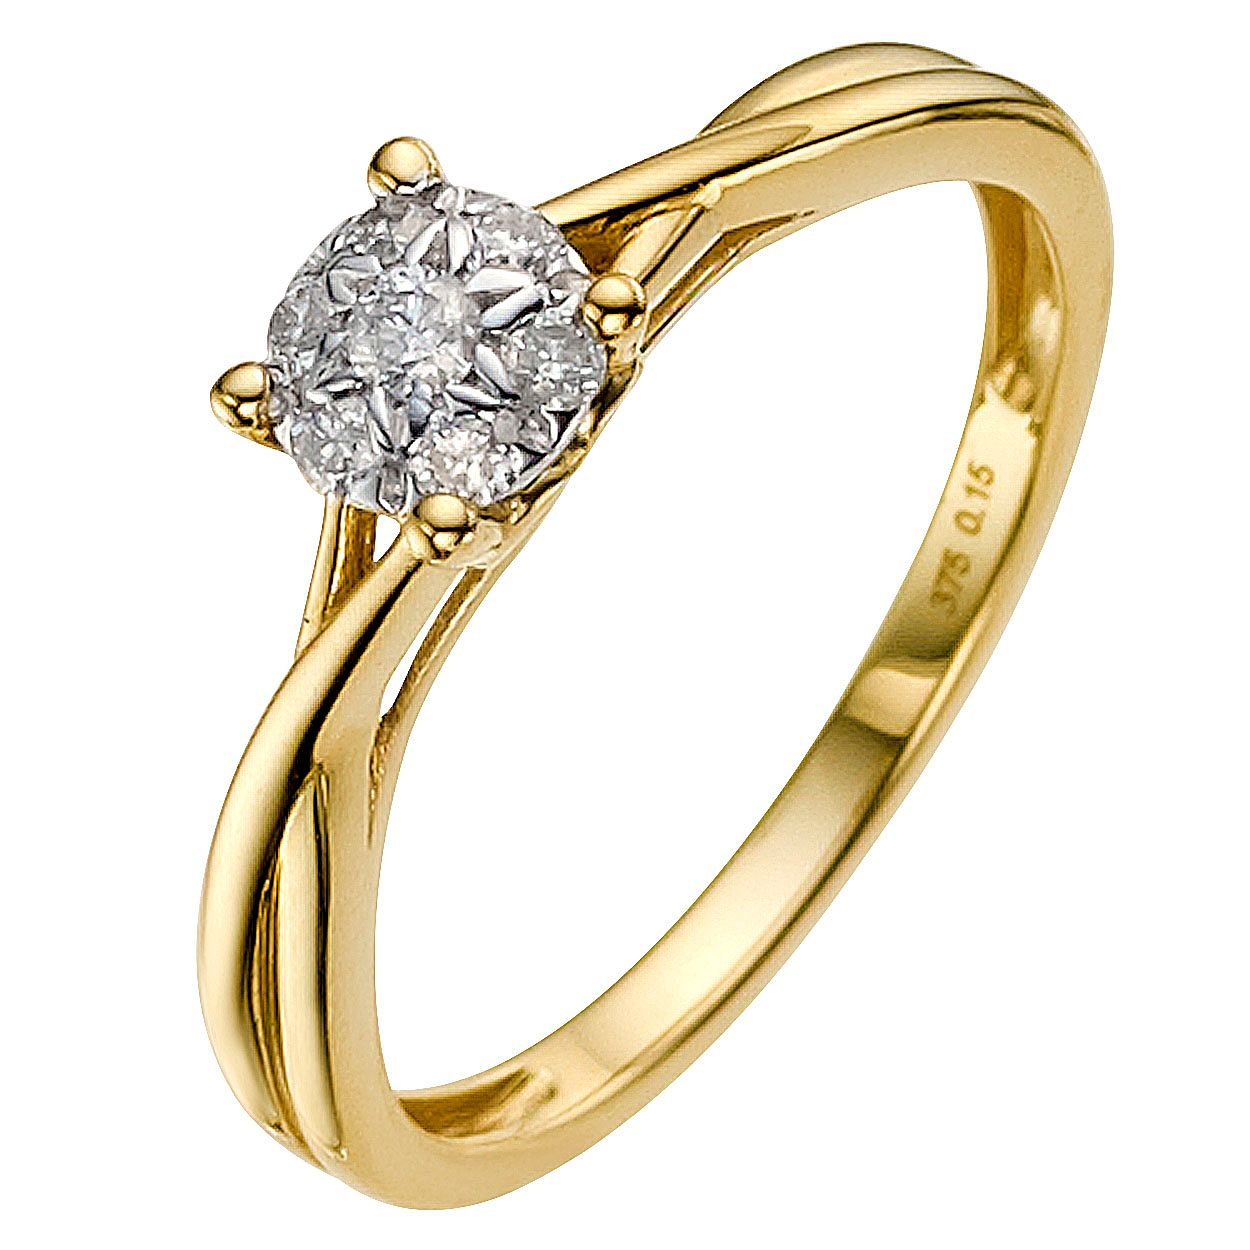 diamonds karat carat of product round yellow weight shape gold halo ring total engagement with side diamond